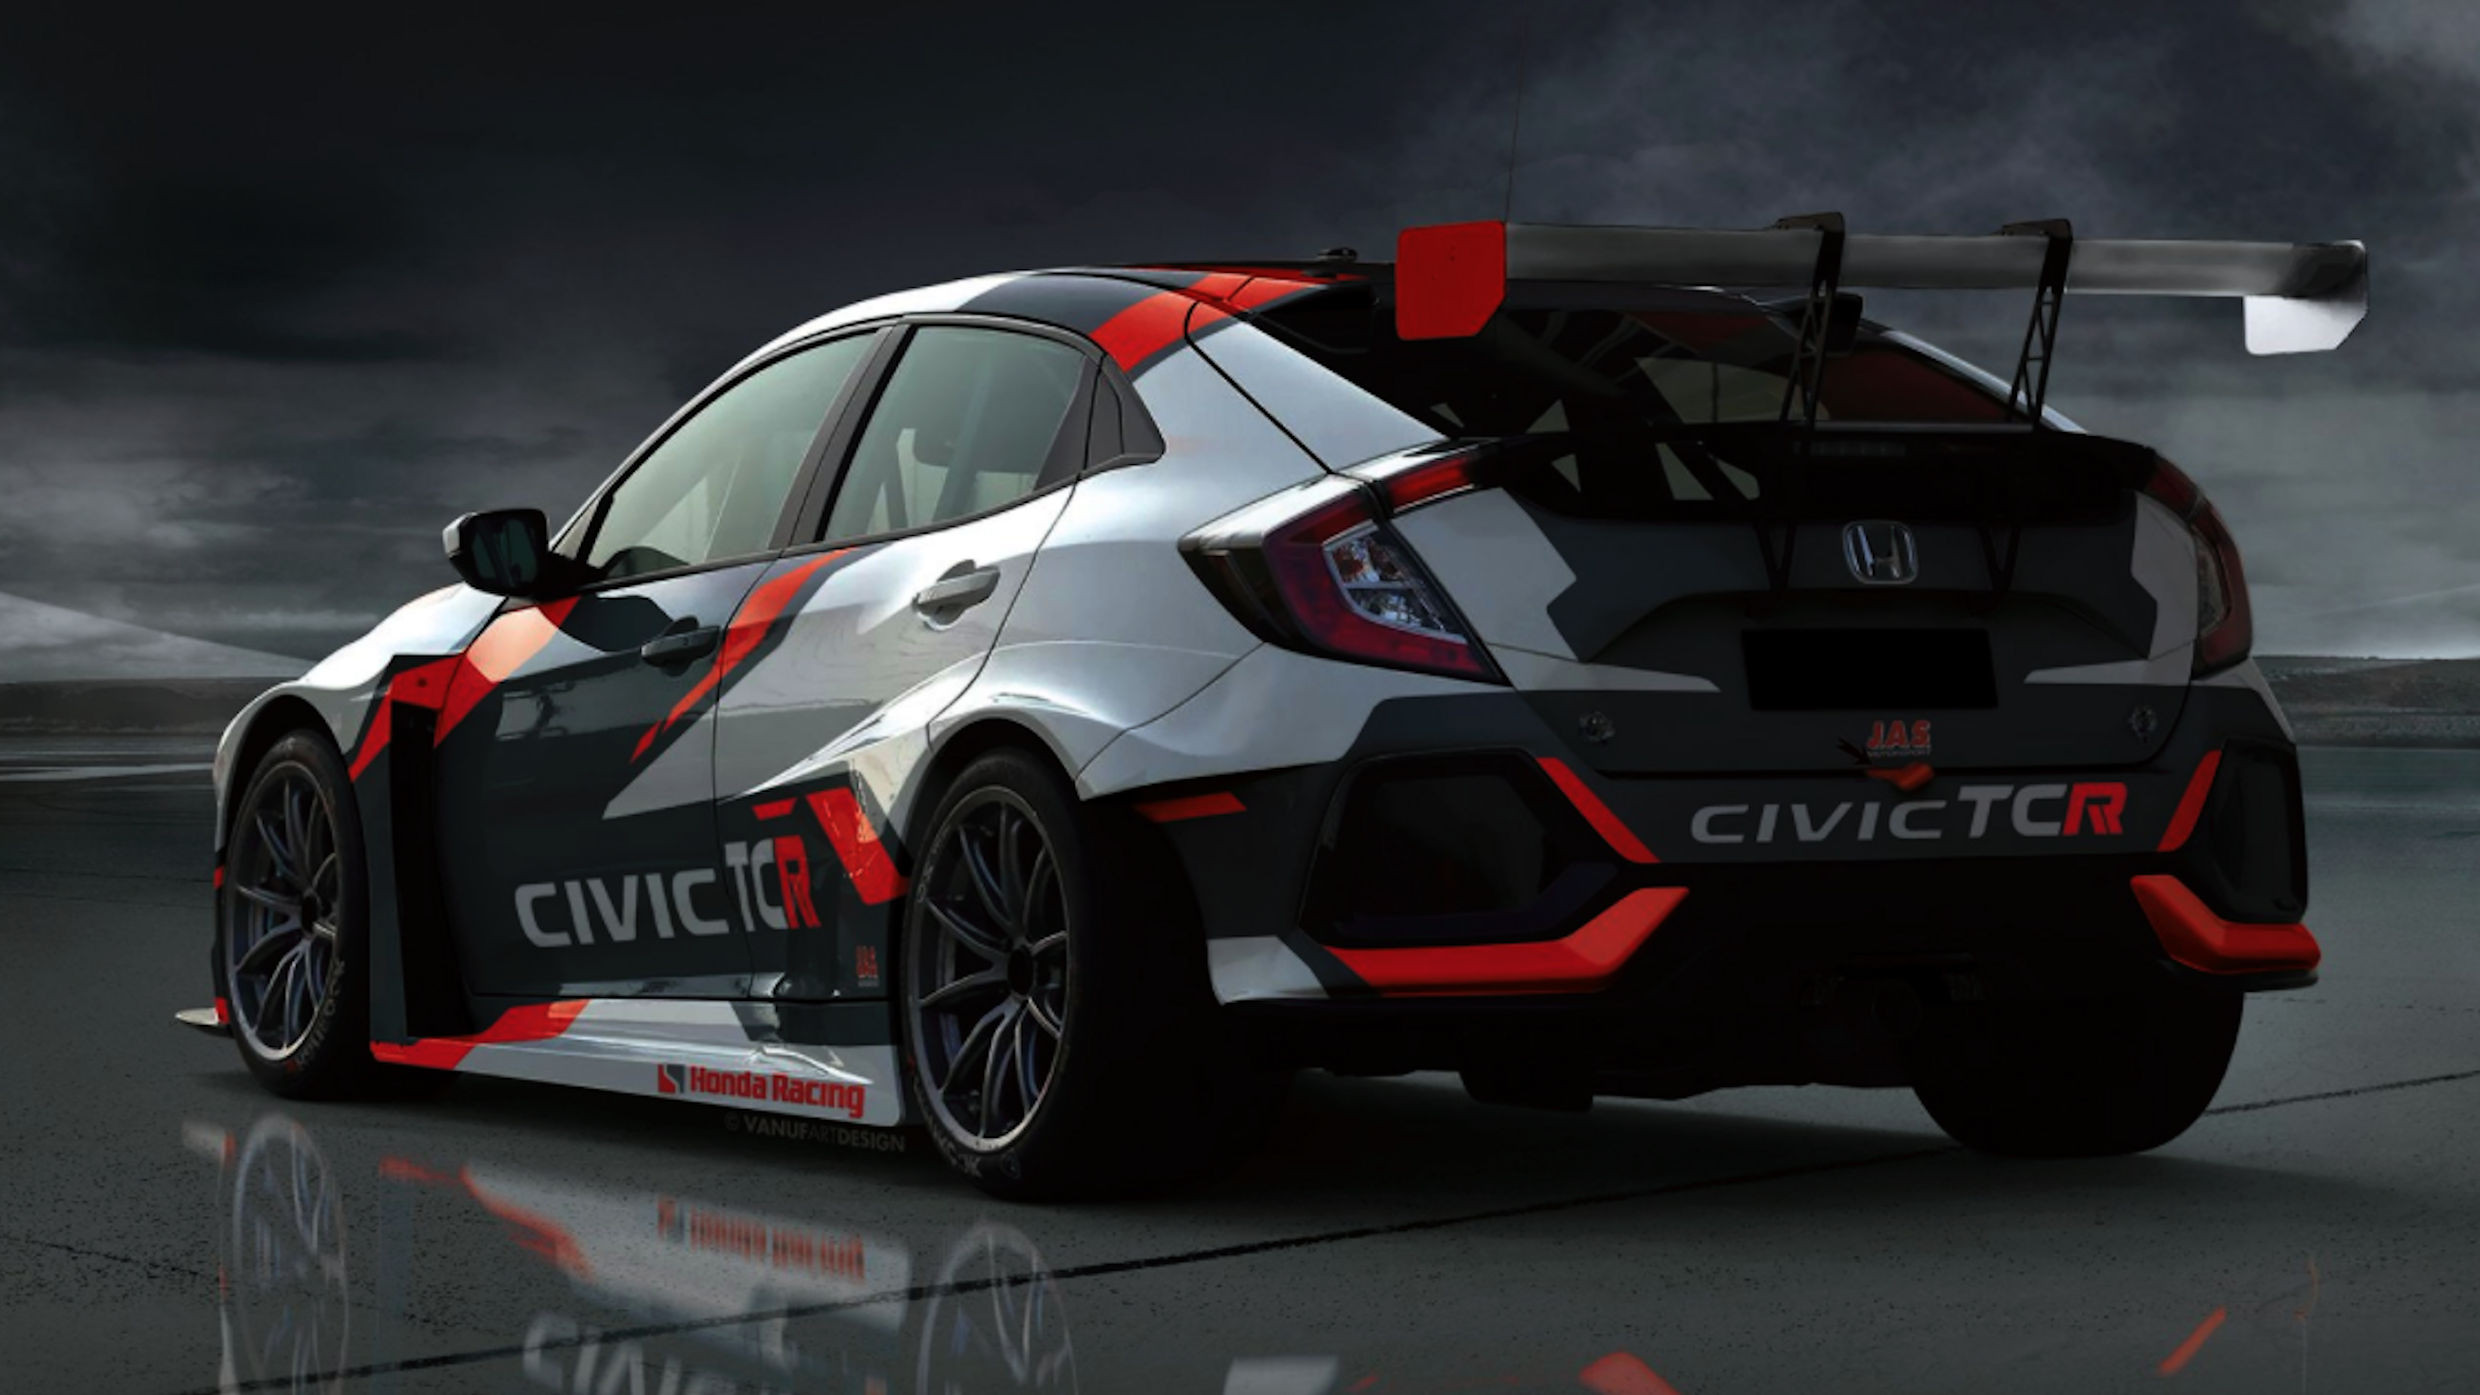 Boutsen Ginion Racing Confirm Two Honda Civics For 2018